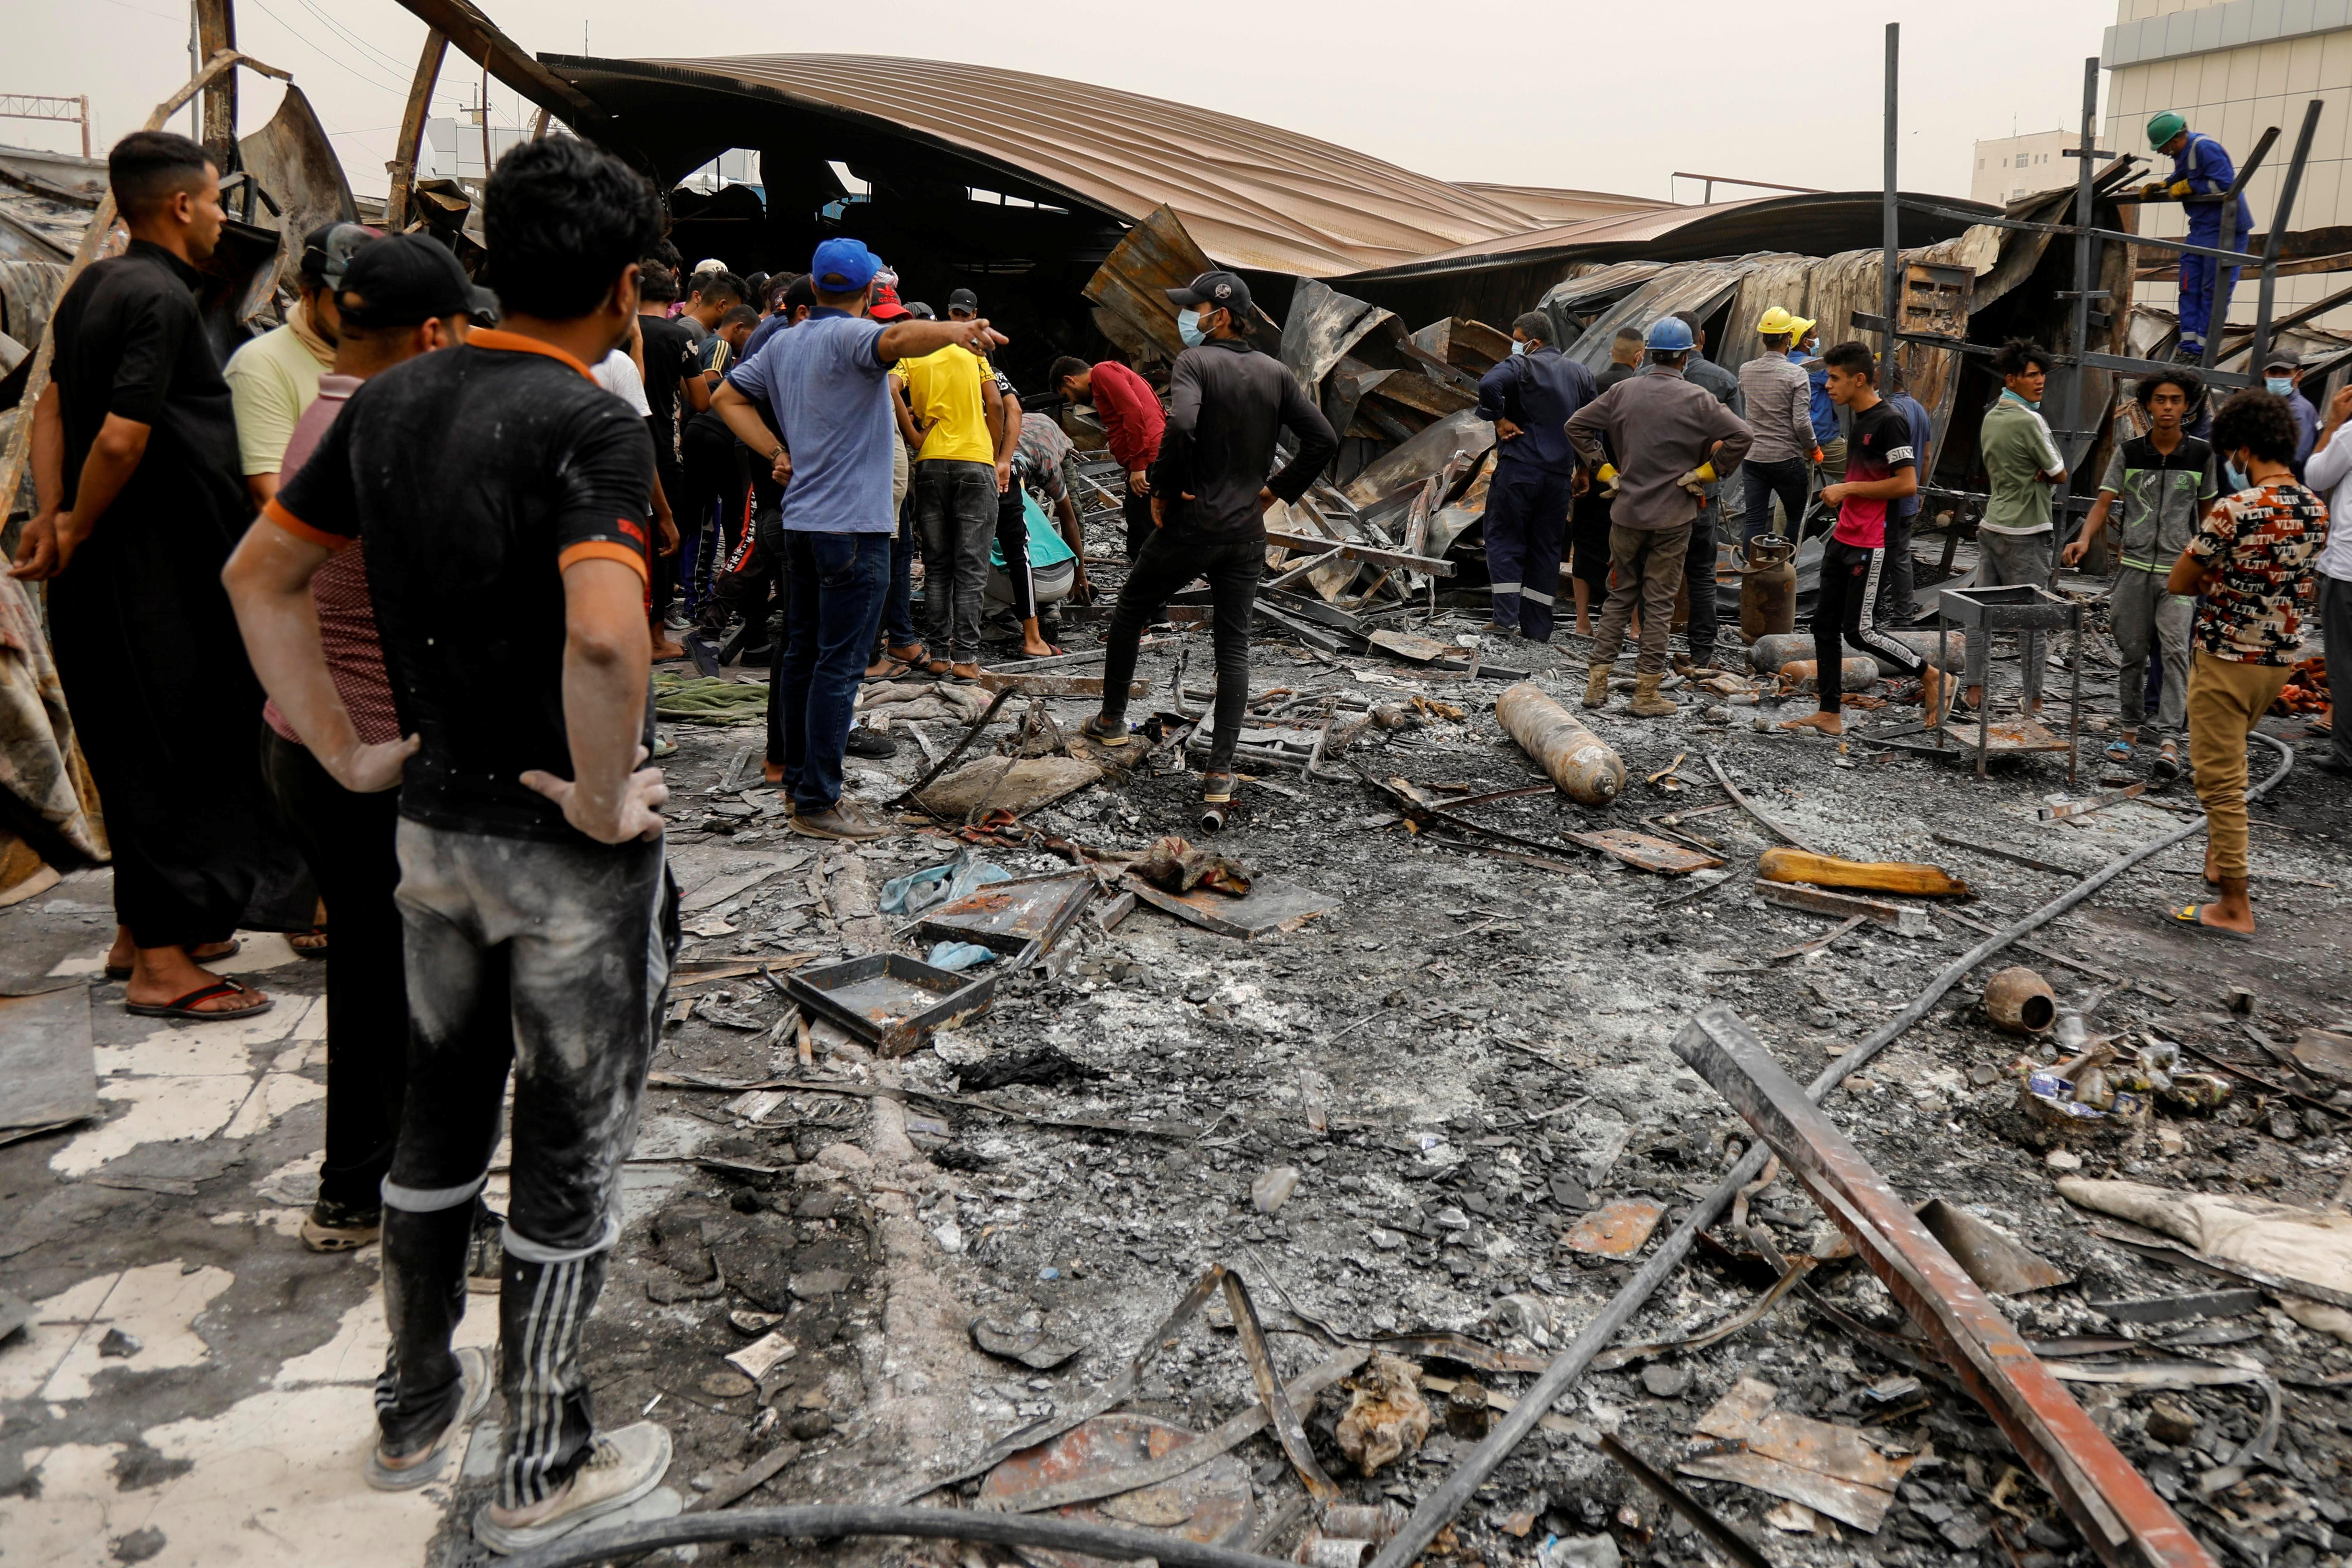 eople gather as they inspect the damage at al-Hussain coronavirus hospital where a fire broke out, in Nassiriya, Iraq, July 13, 2021.